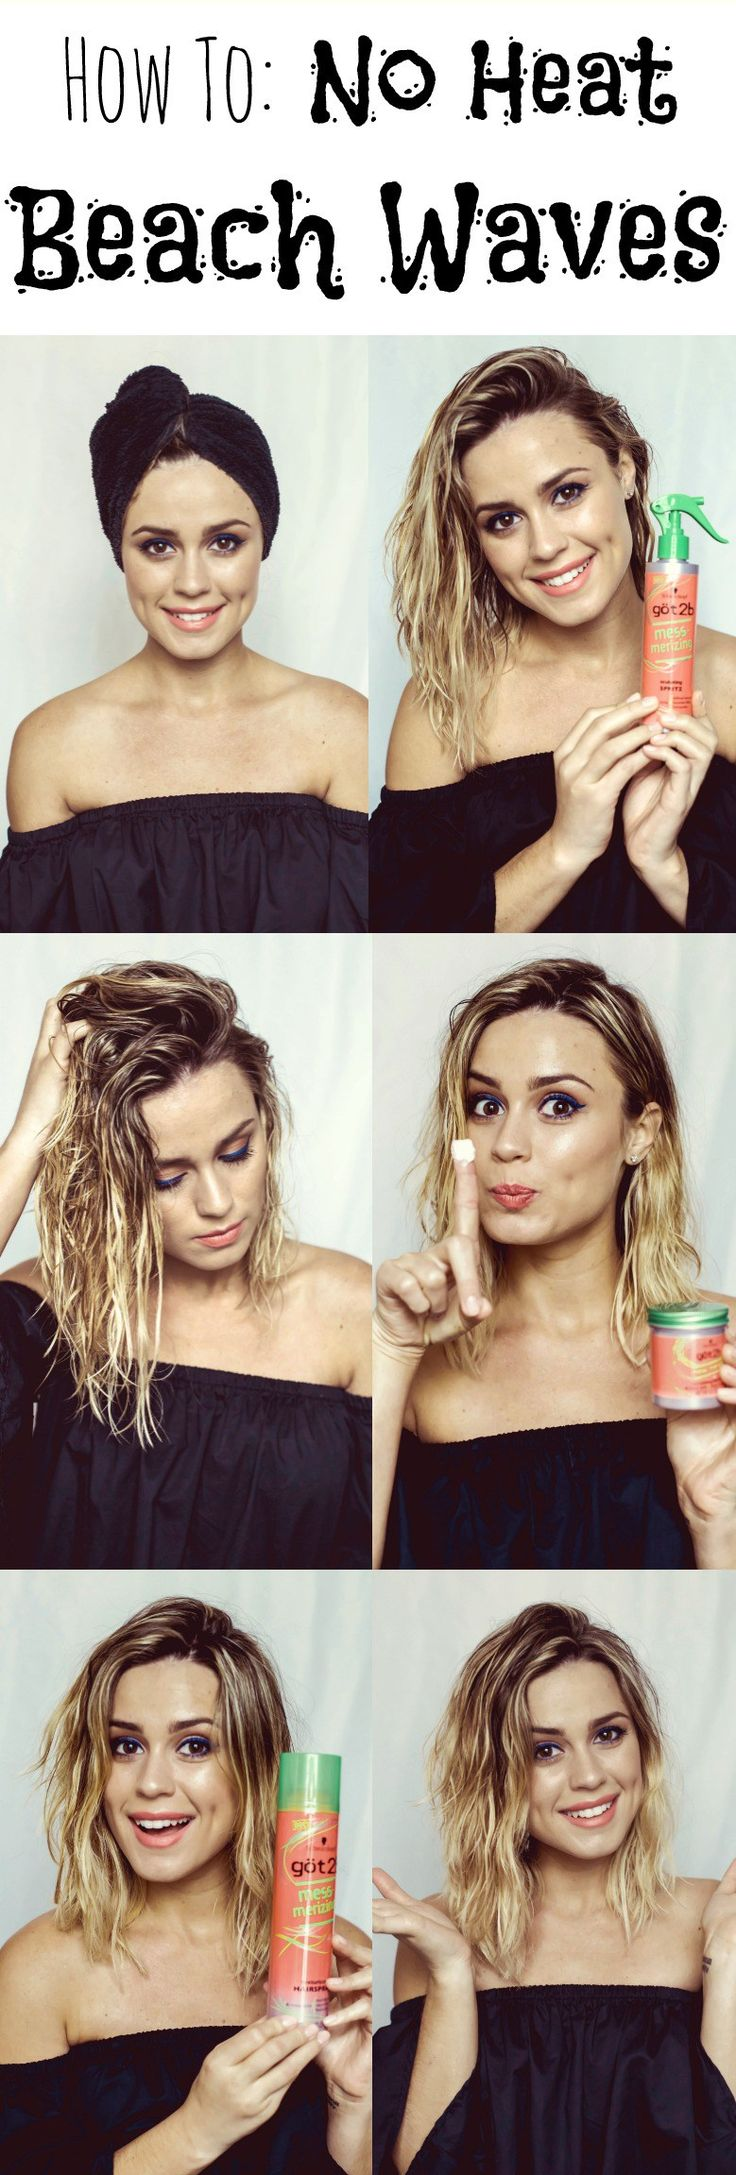 best 25+ beach waves tutorial ideas on pinterest | beach waves